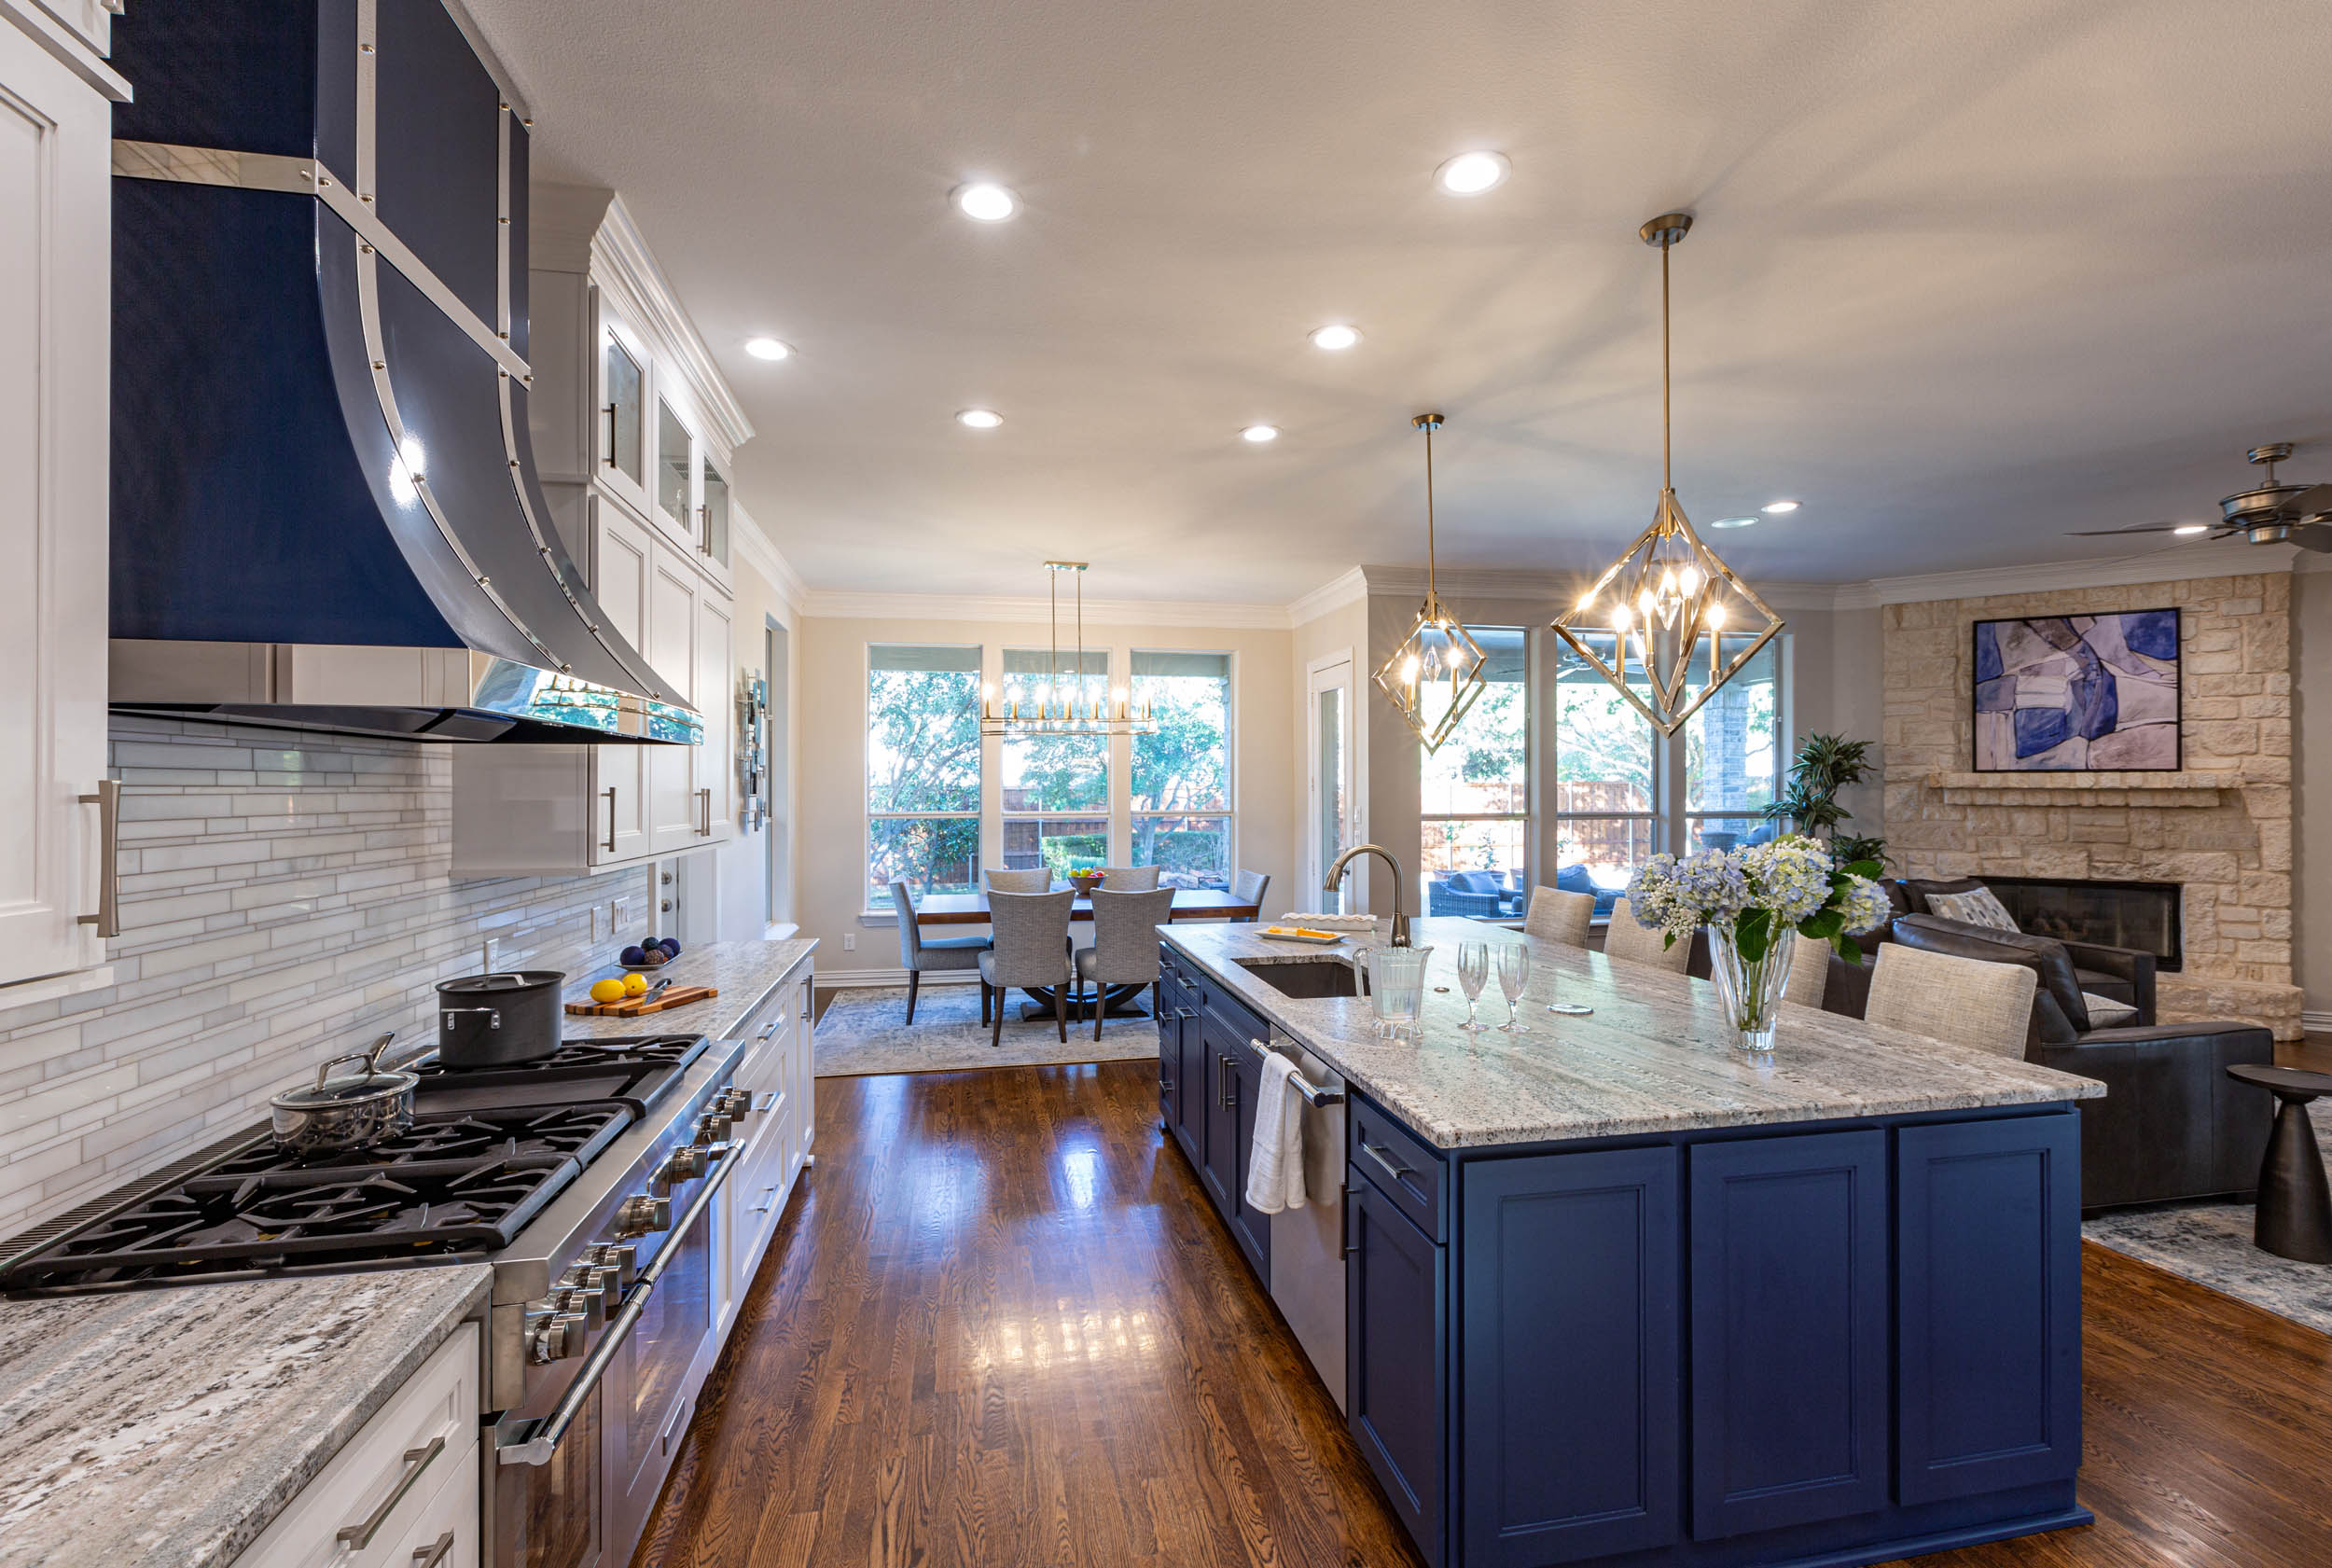 Kitchen remodel in Keller, Texas with open style and large kitchen island